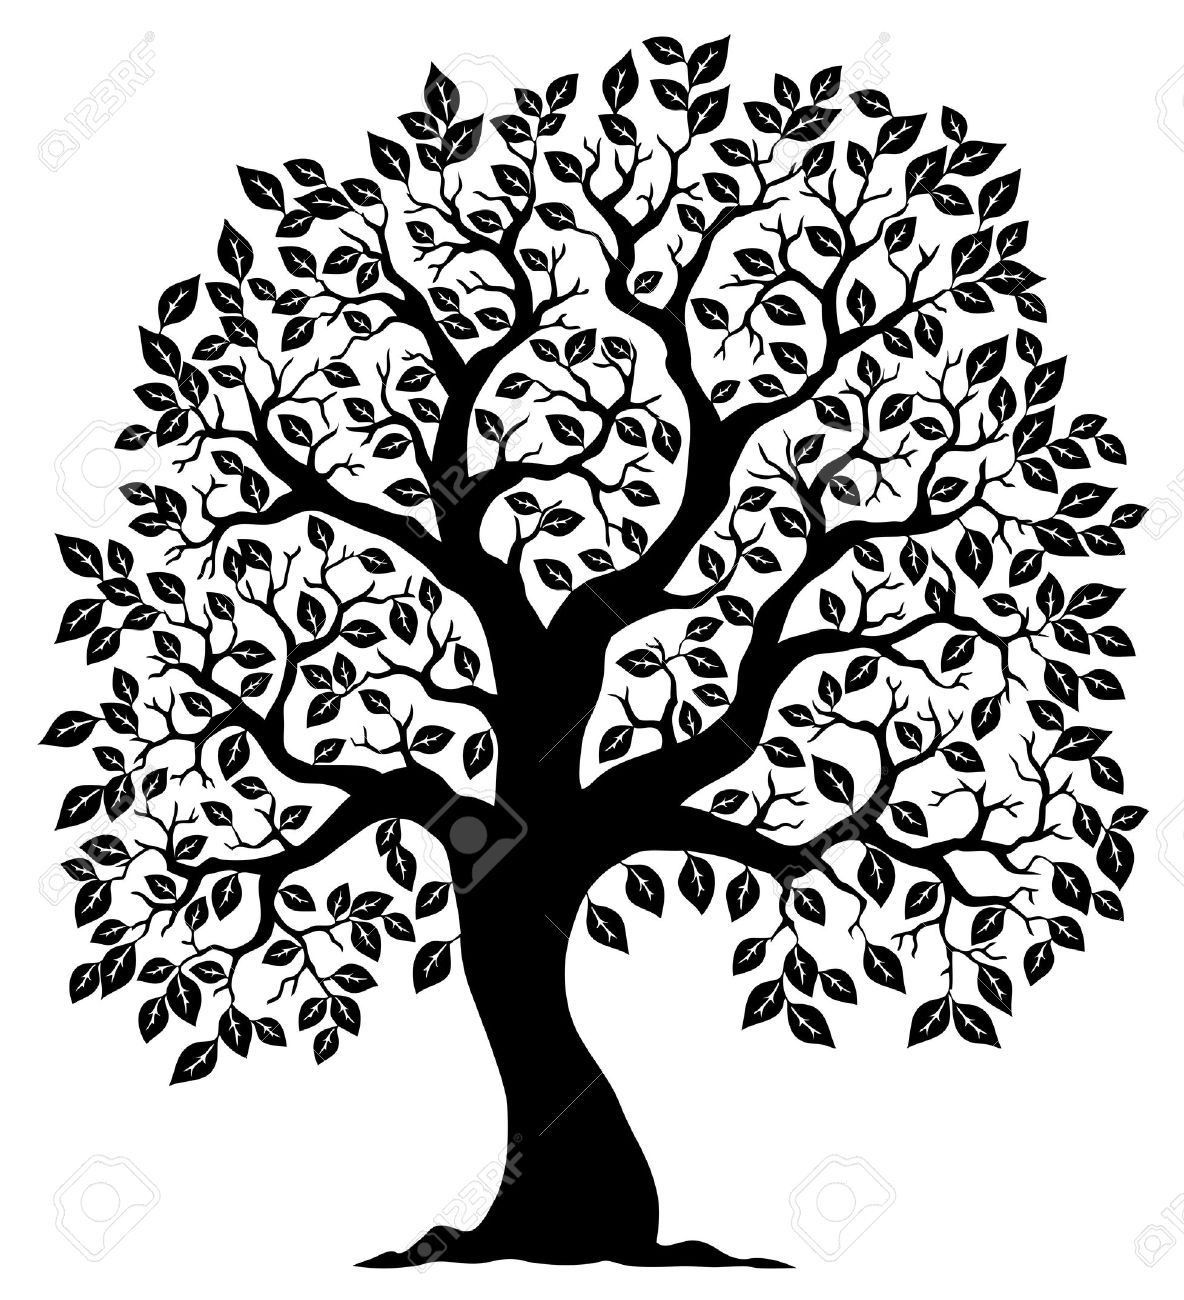 Related Image Leaf Illustration Tree Drawing Family Tree Clipart